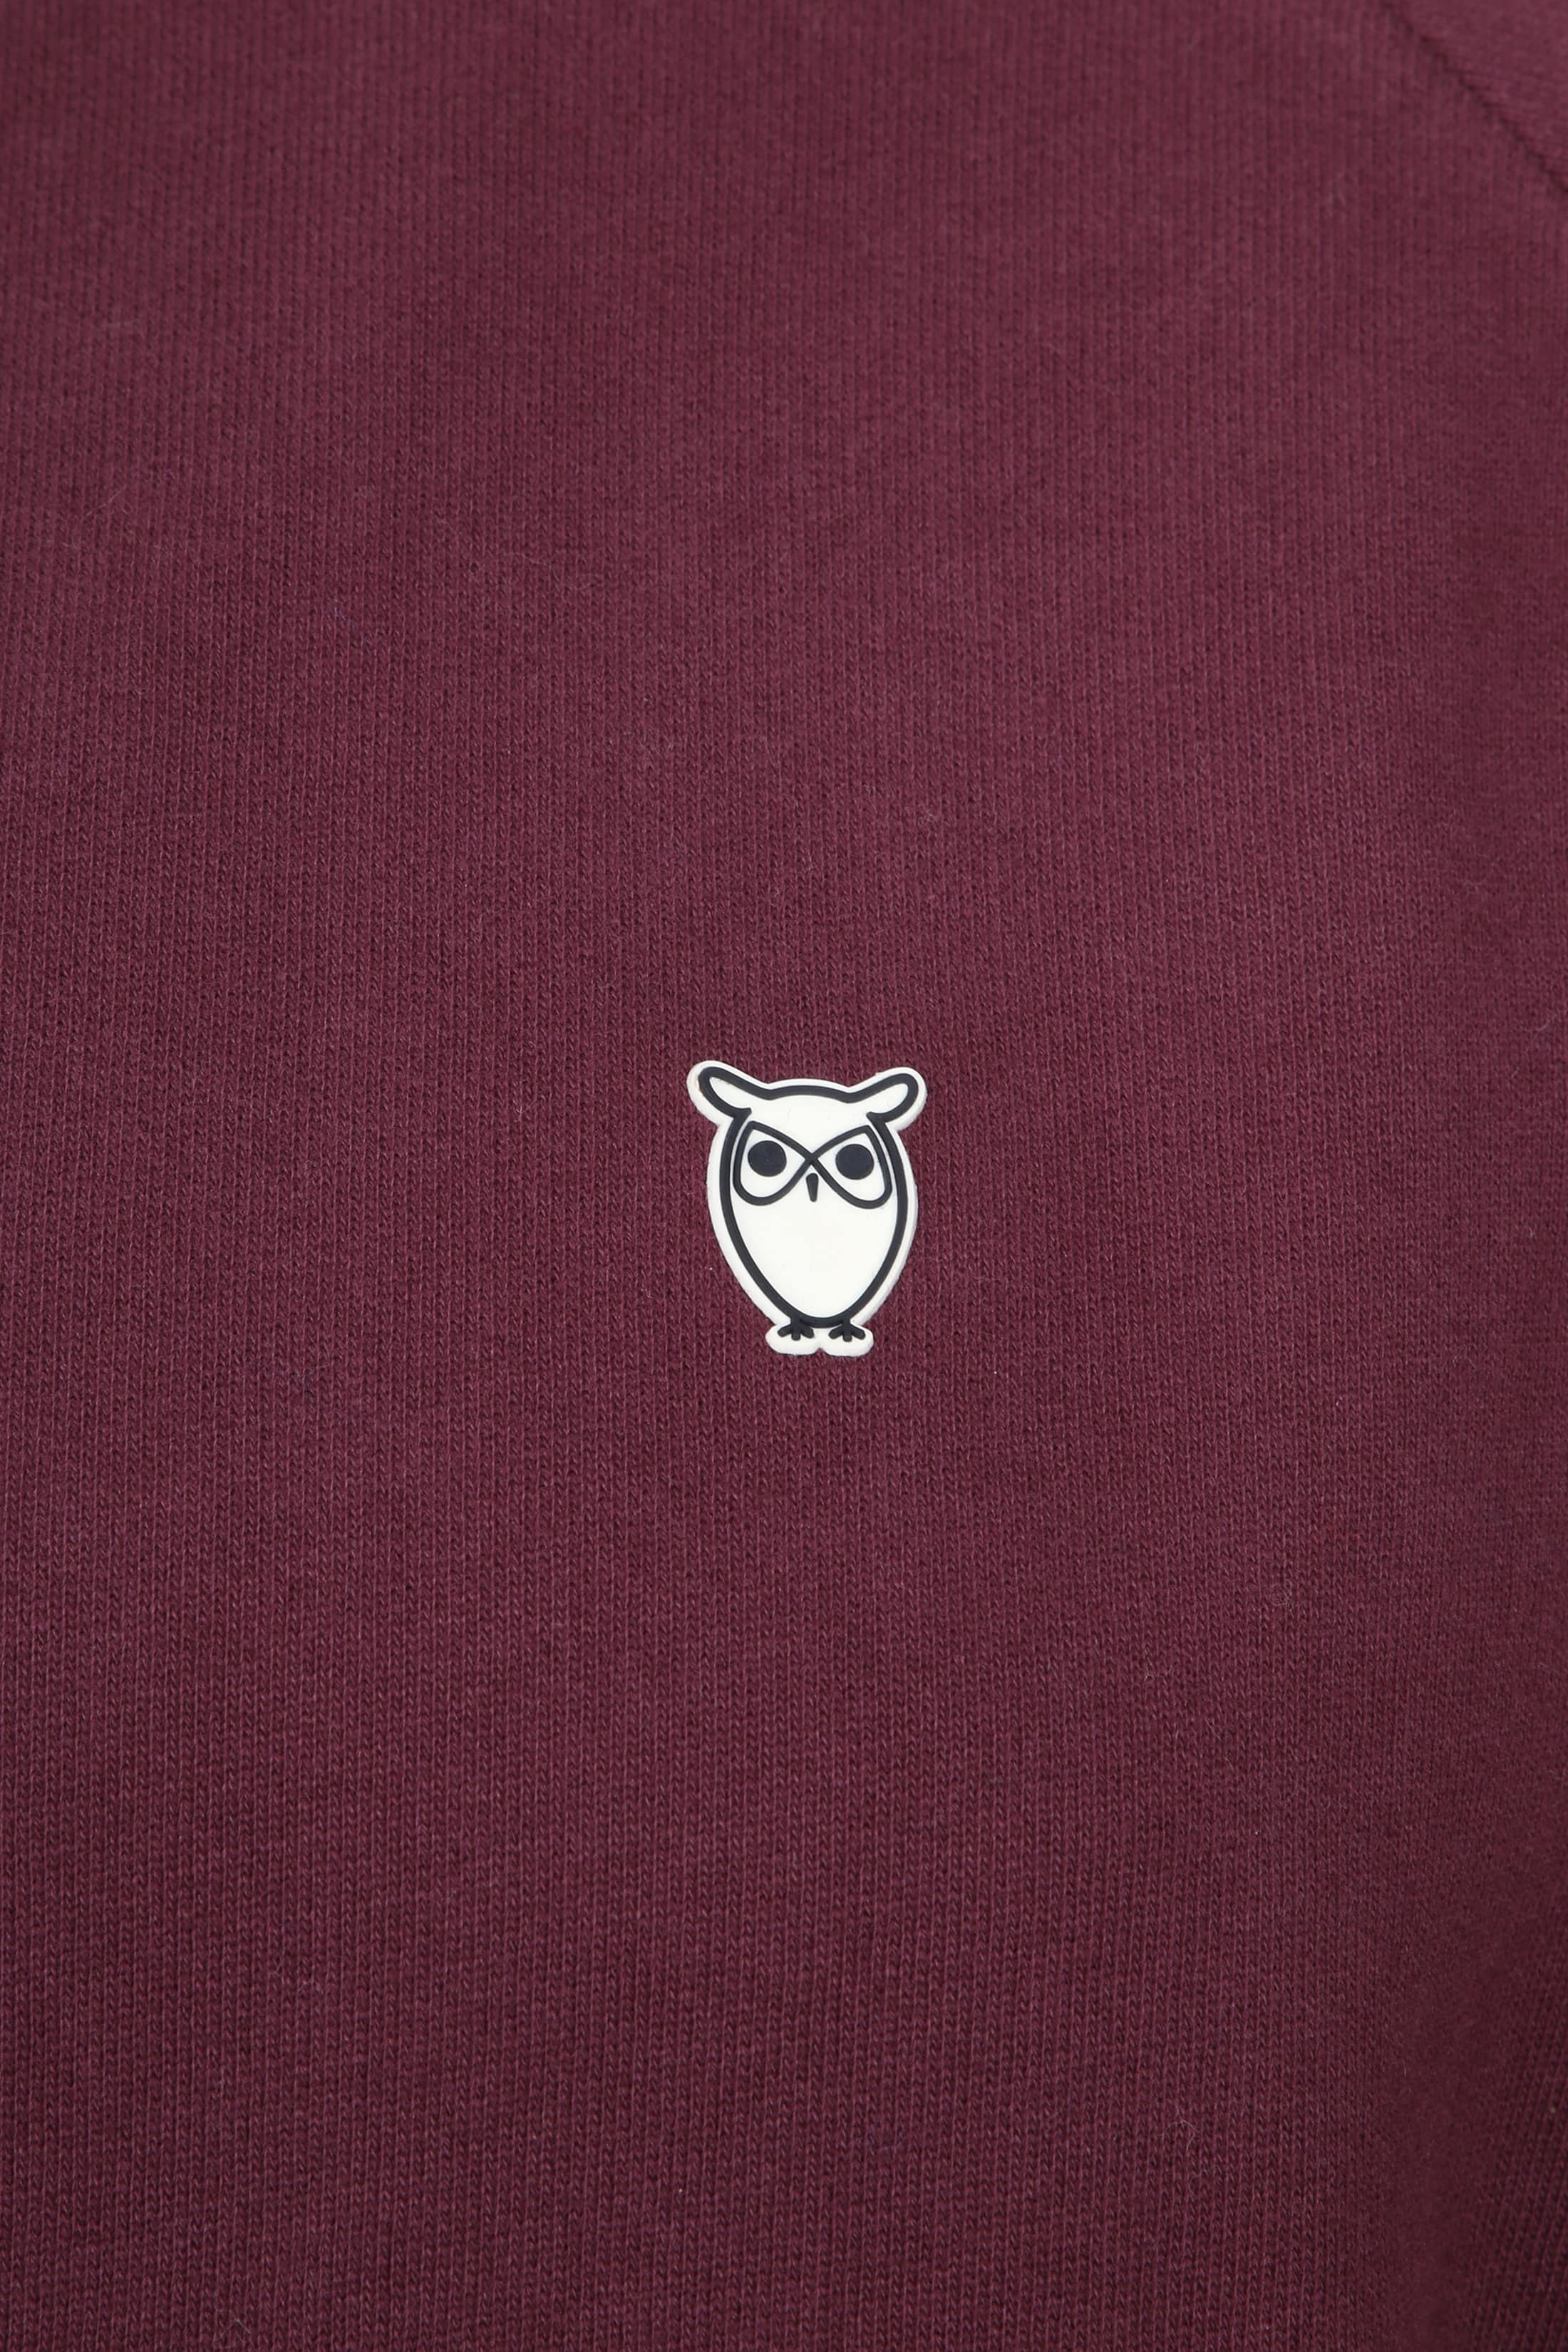 Knowledge Cotton Apparel Trui Bordeaux foto 1